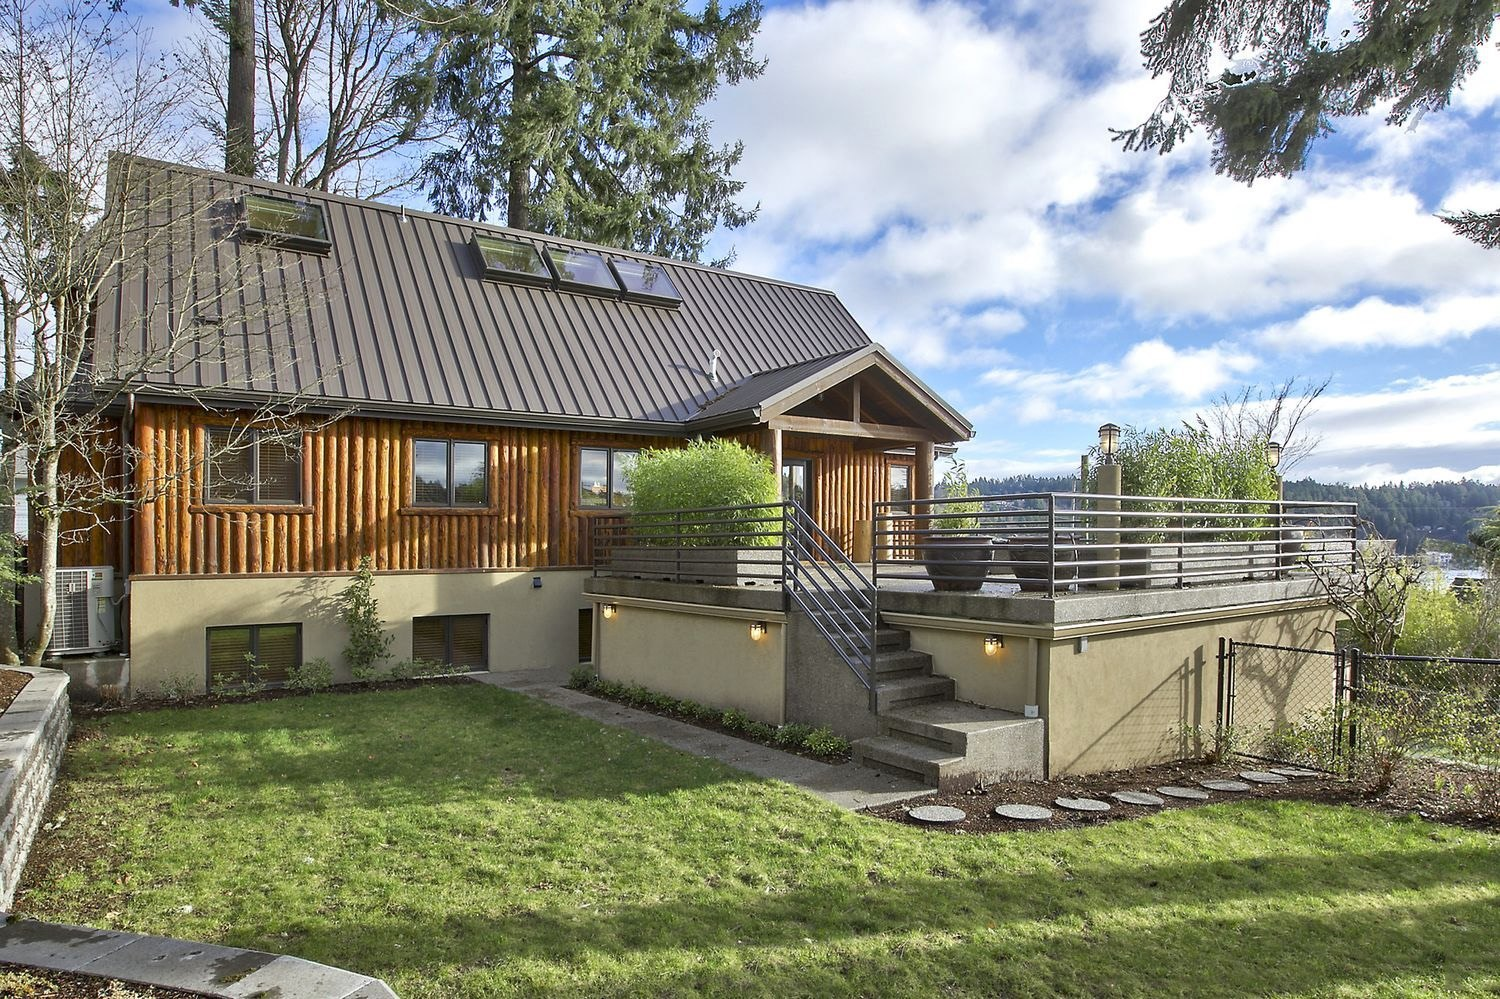 Delahunt Custom Homes - Gig Harbor Residence - Custom Home Builder